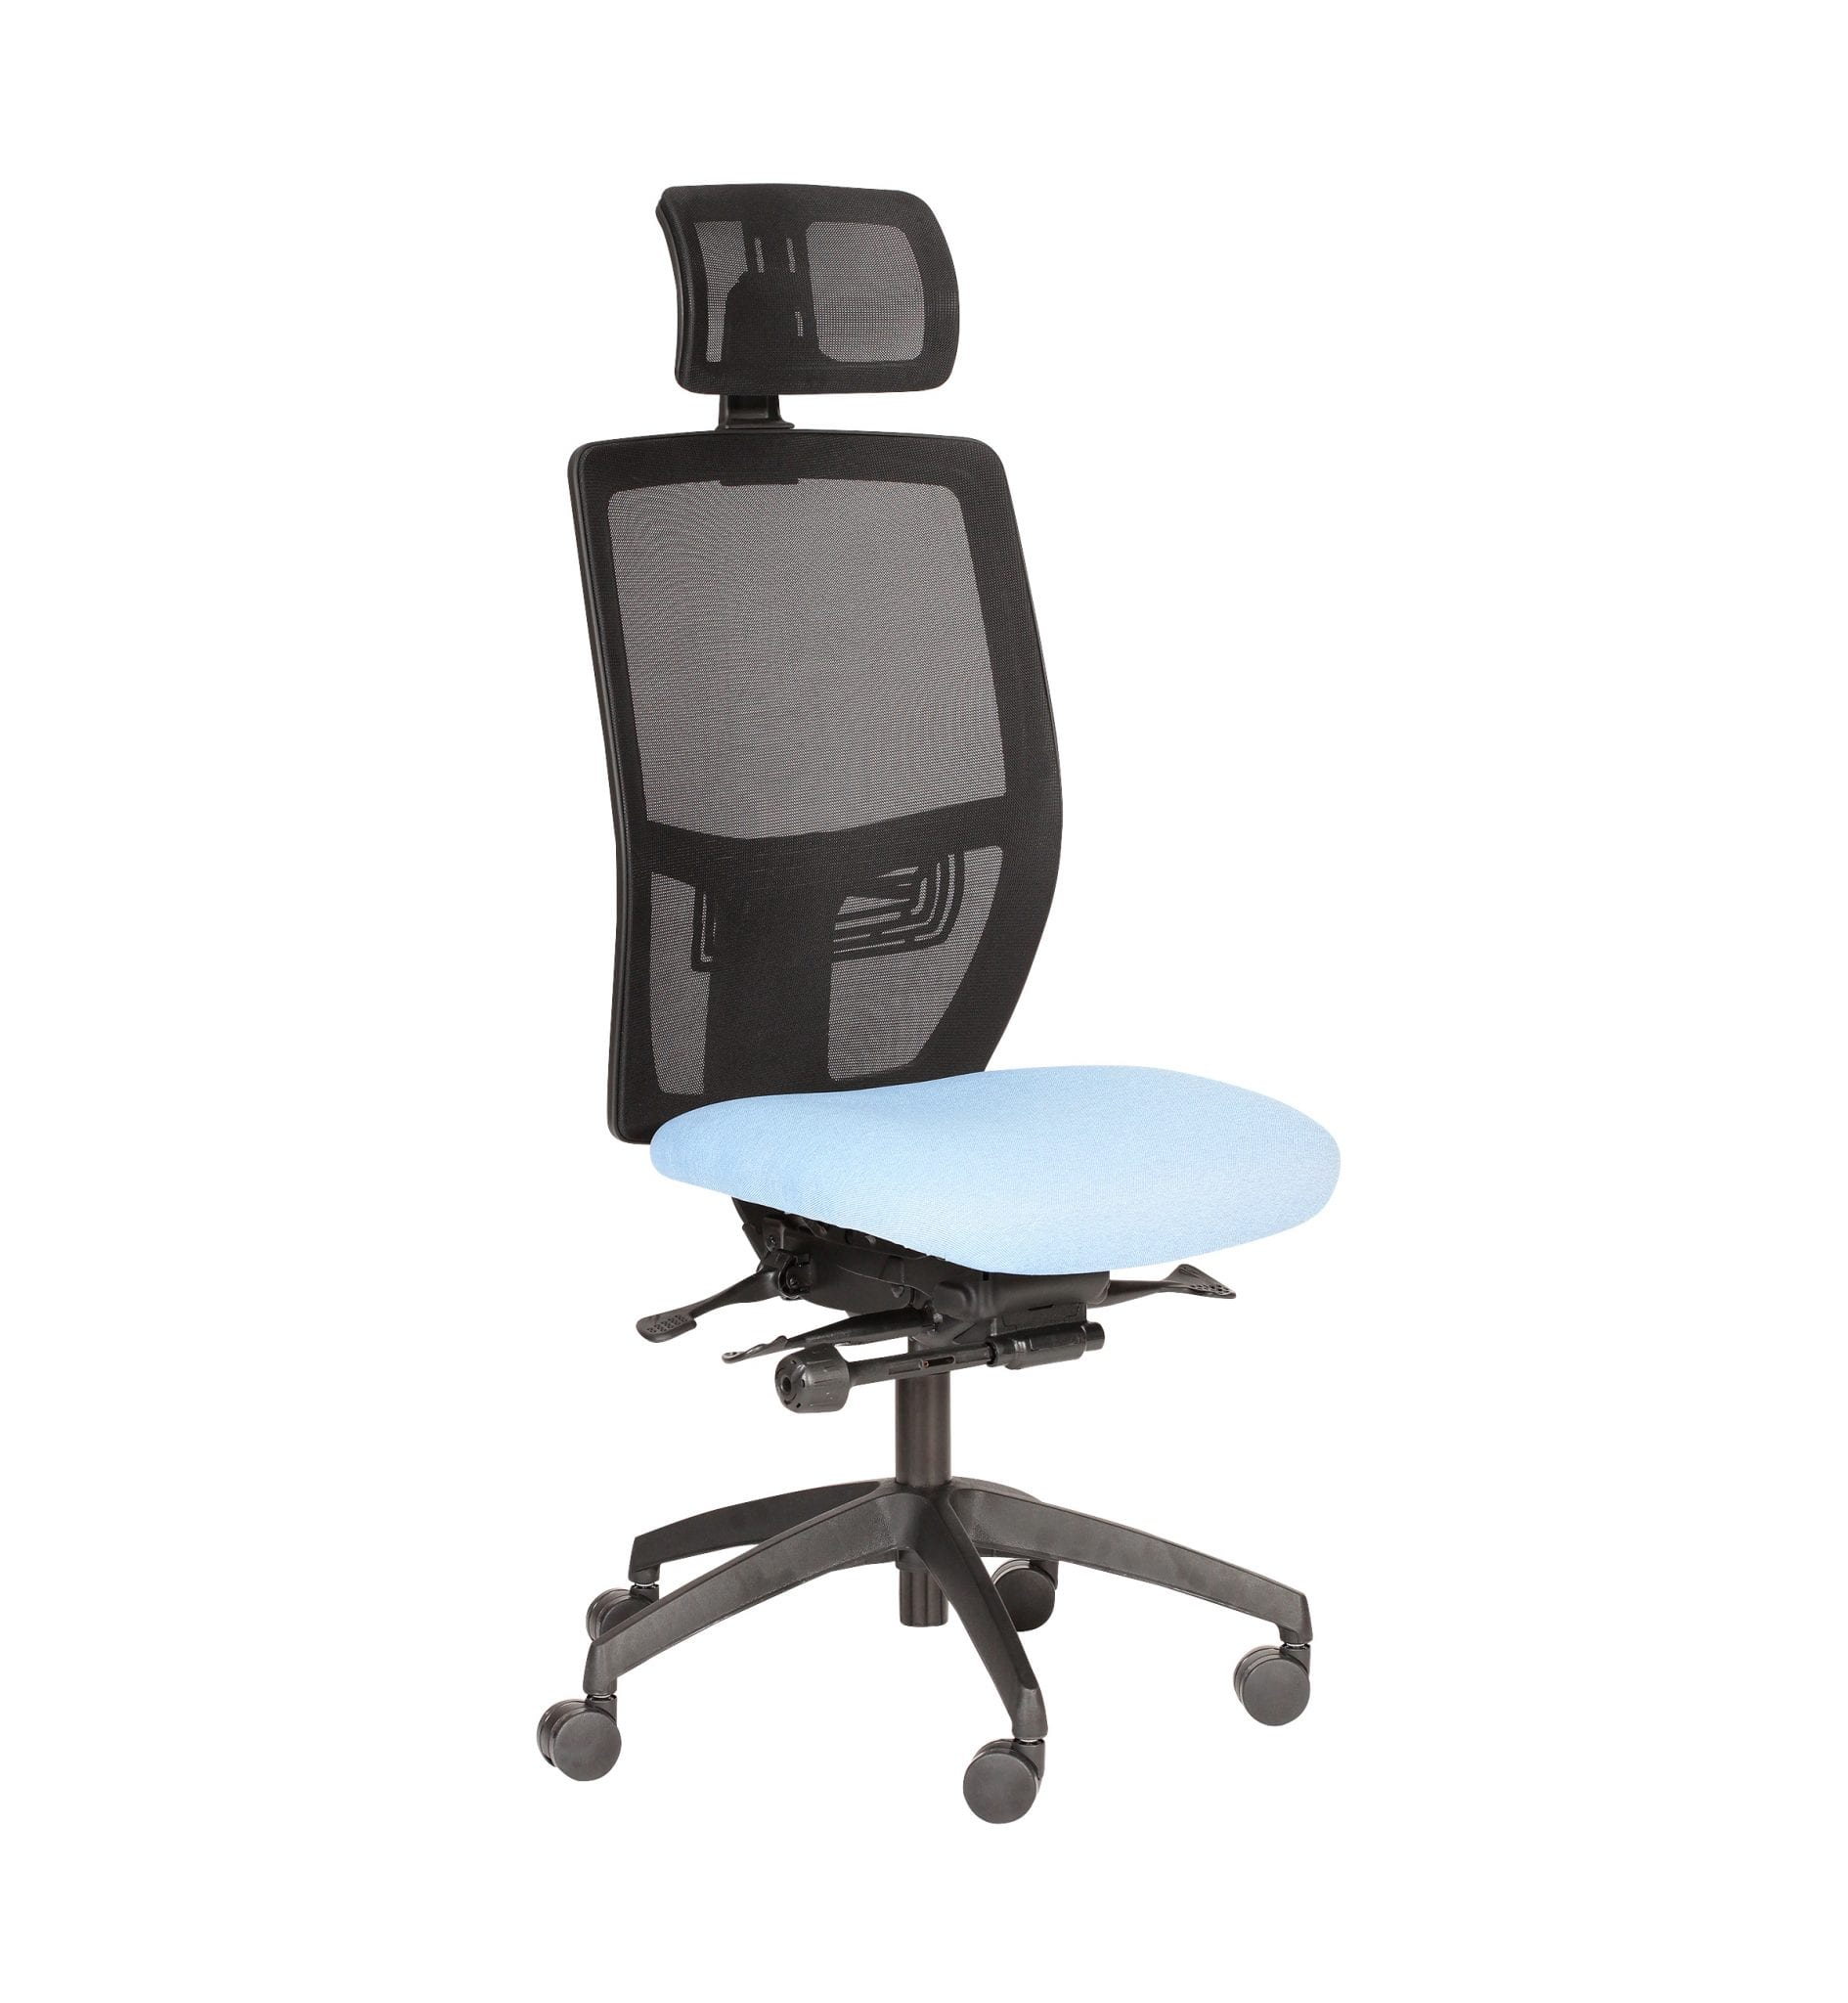 PMB83 - Posturemax COOL - Office chair with adjustable headrest easy adjustment. Ideal for office and call centre use.